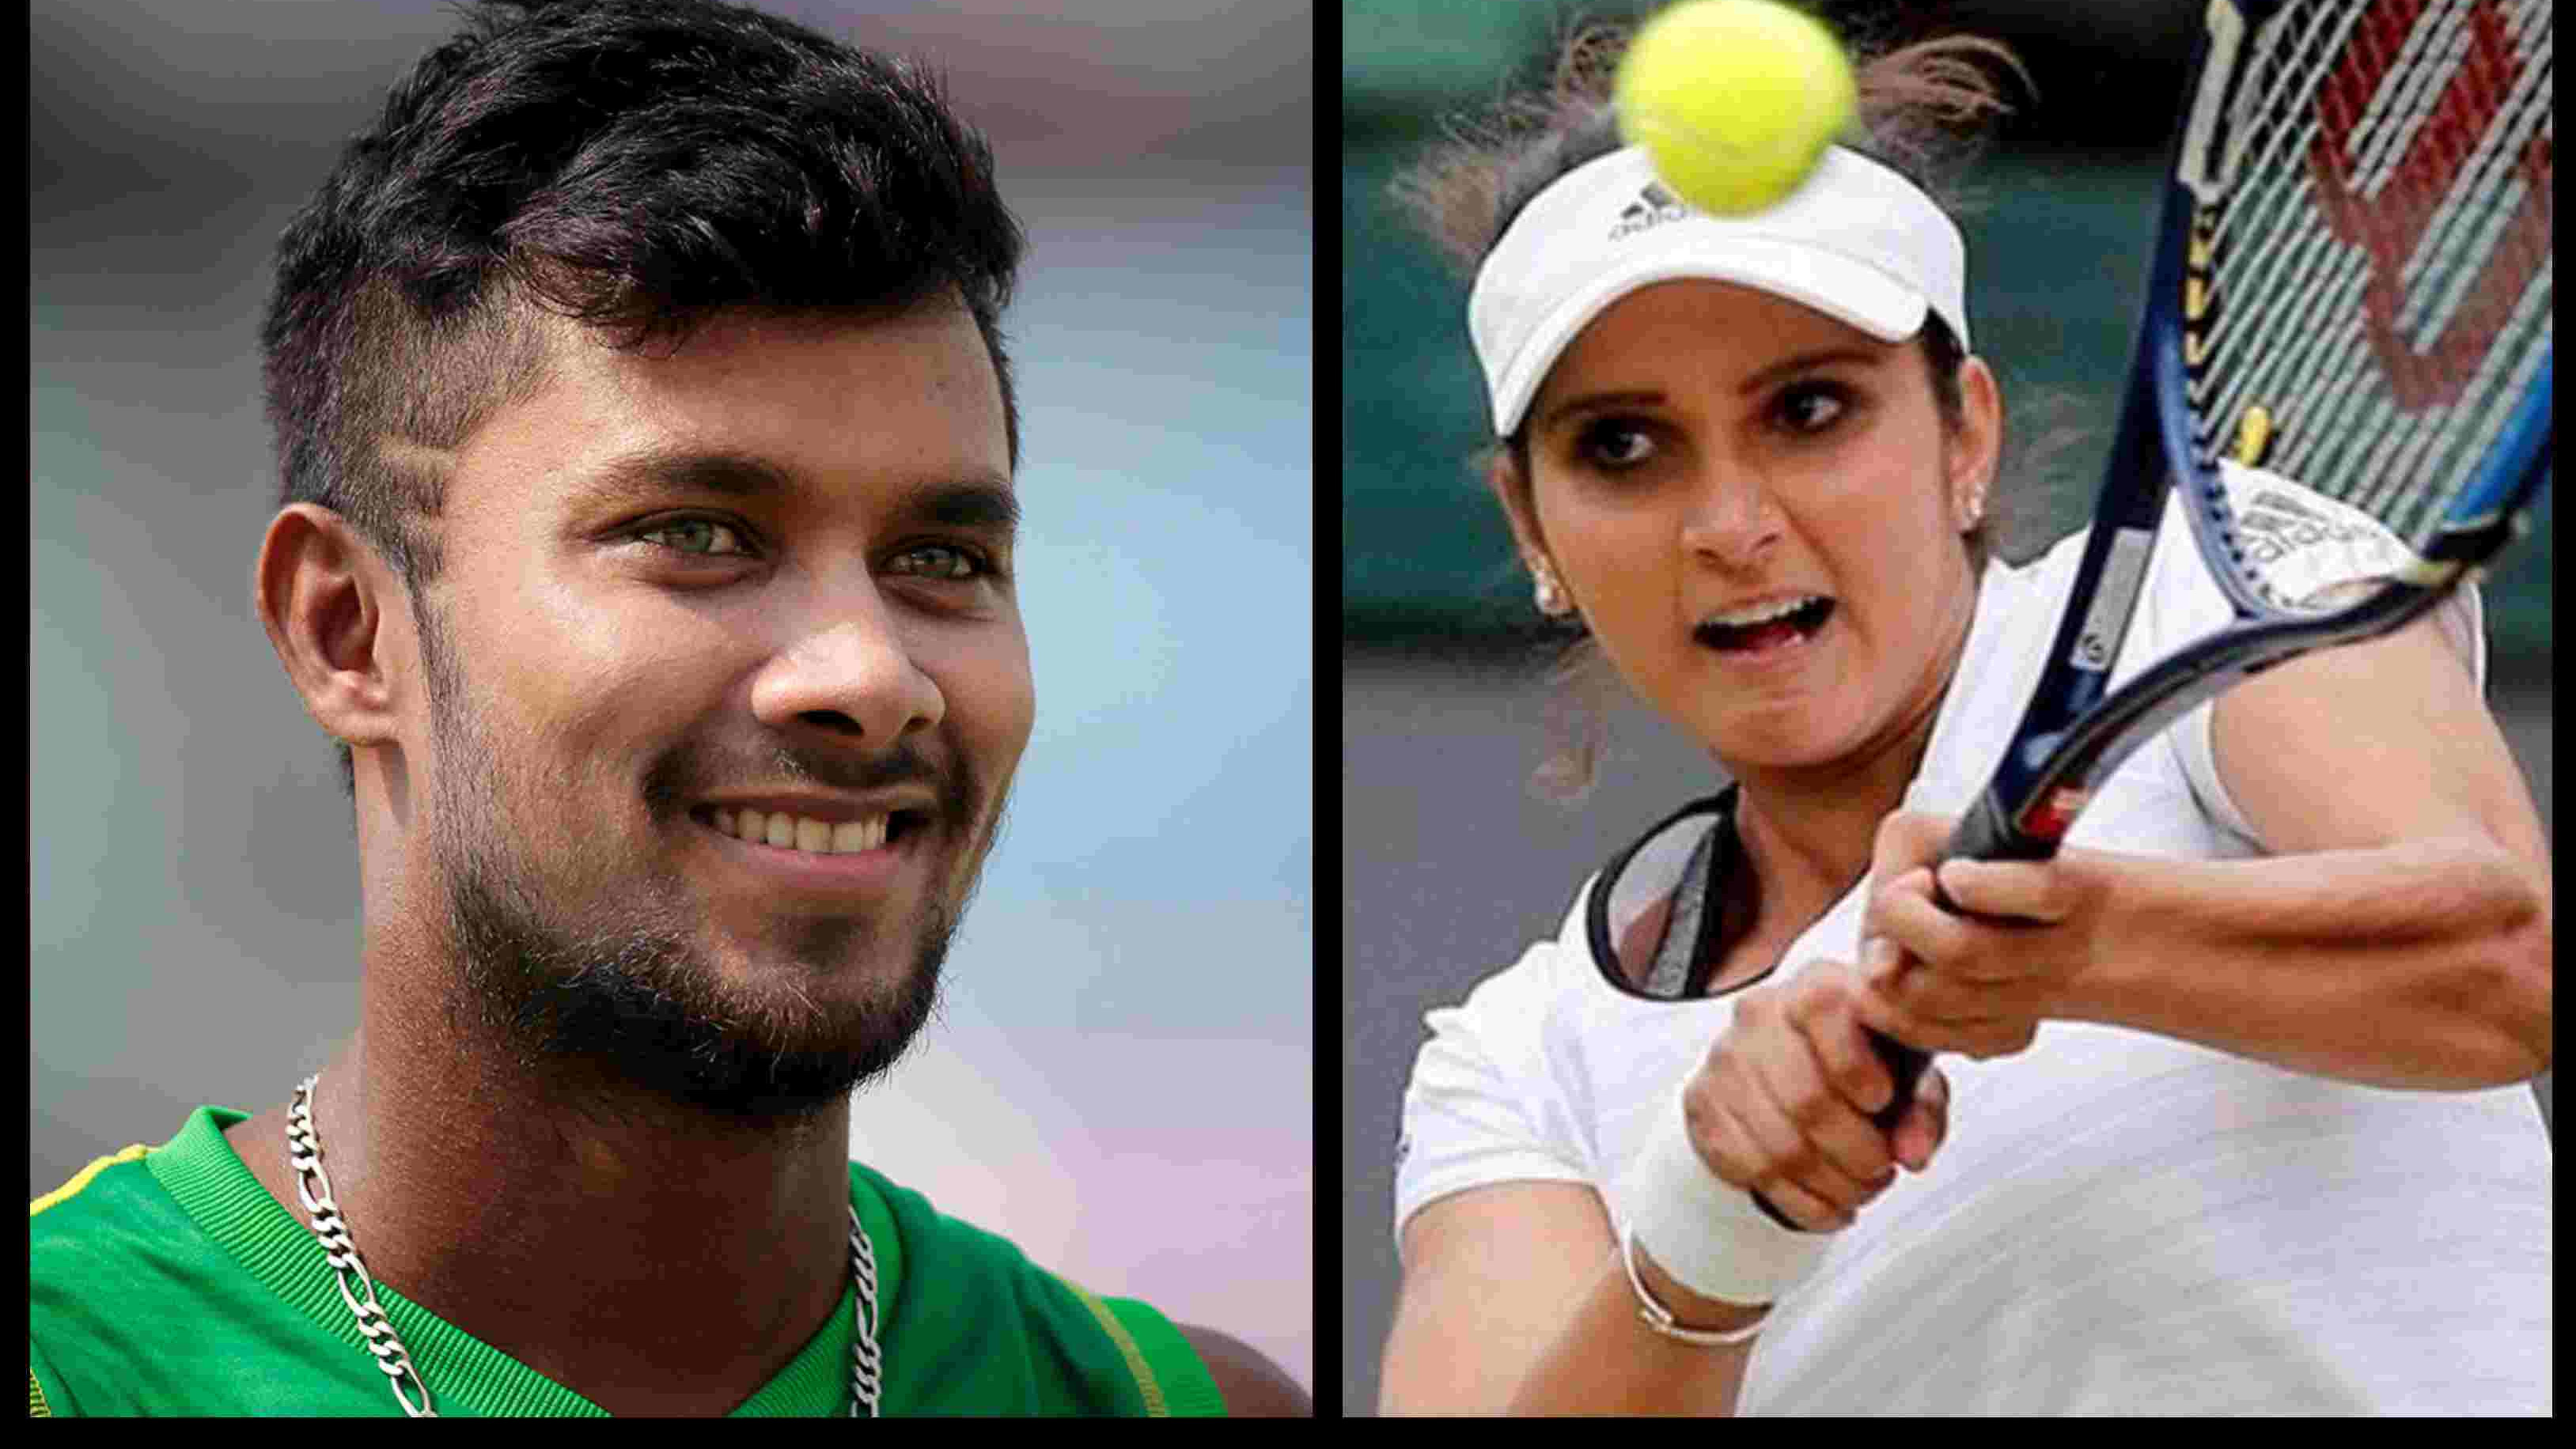 Indian Tennis star Sania Mirza subjected to eve-teasing by Bangladesh cricketer